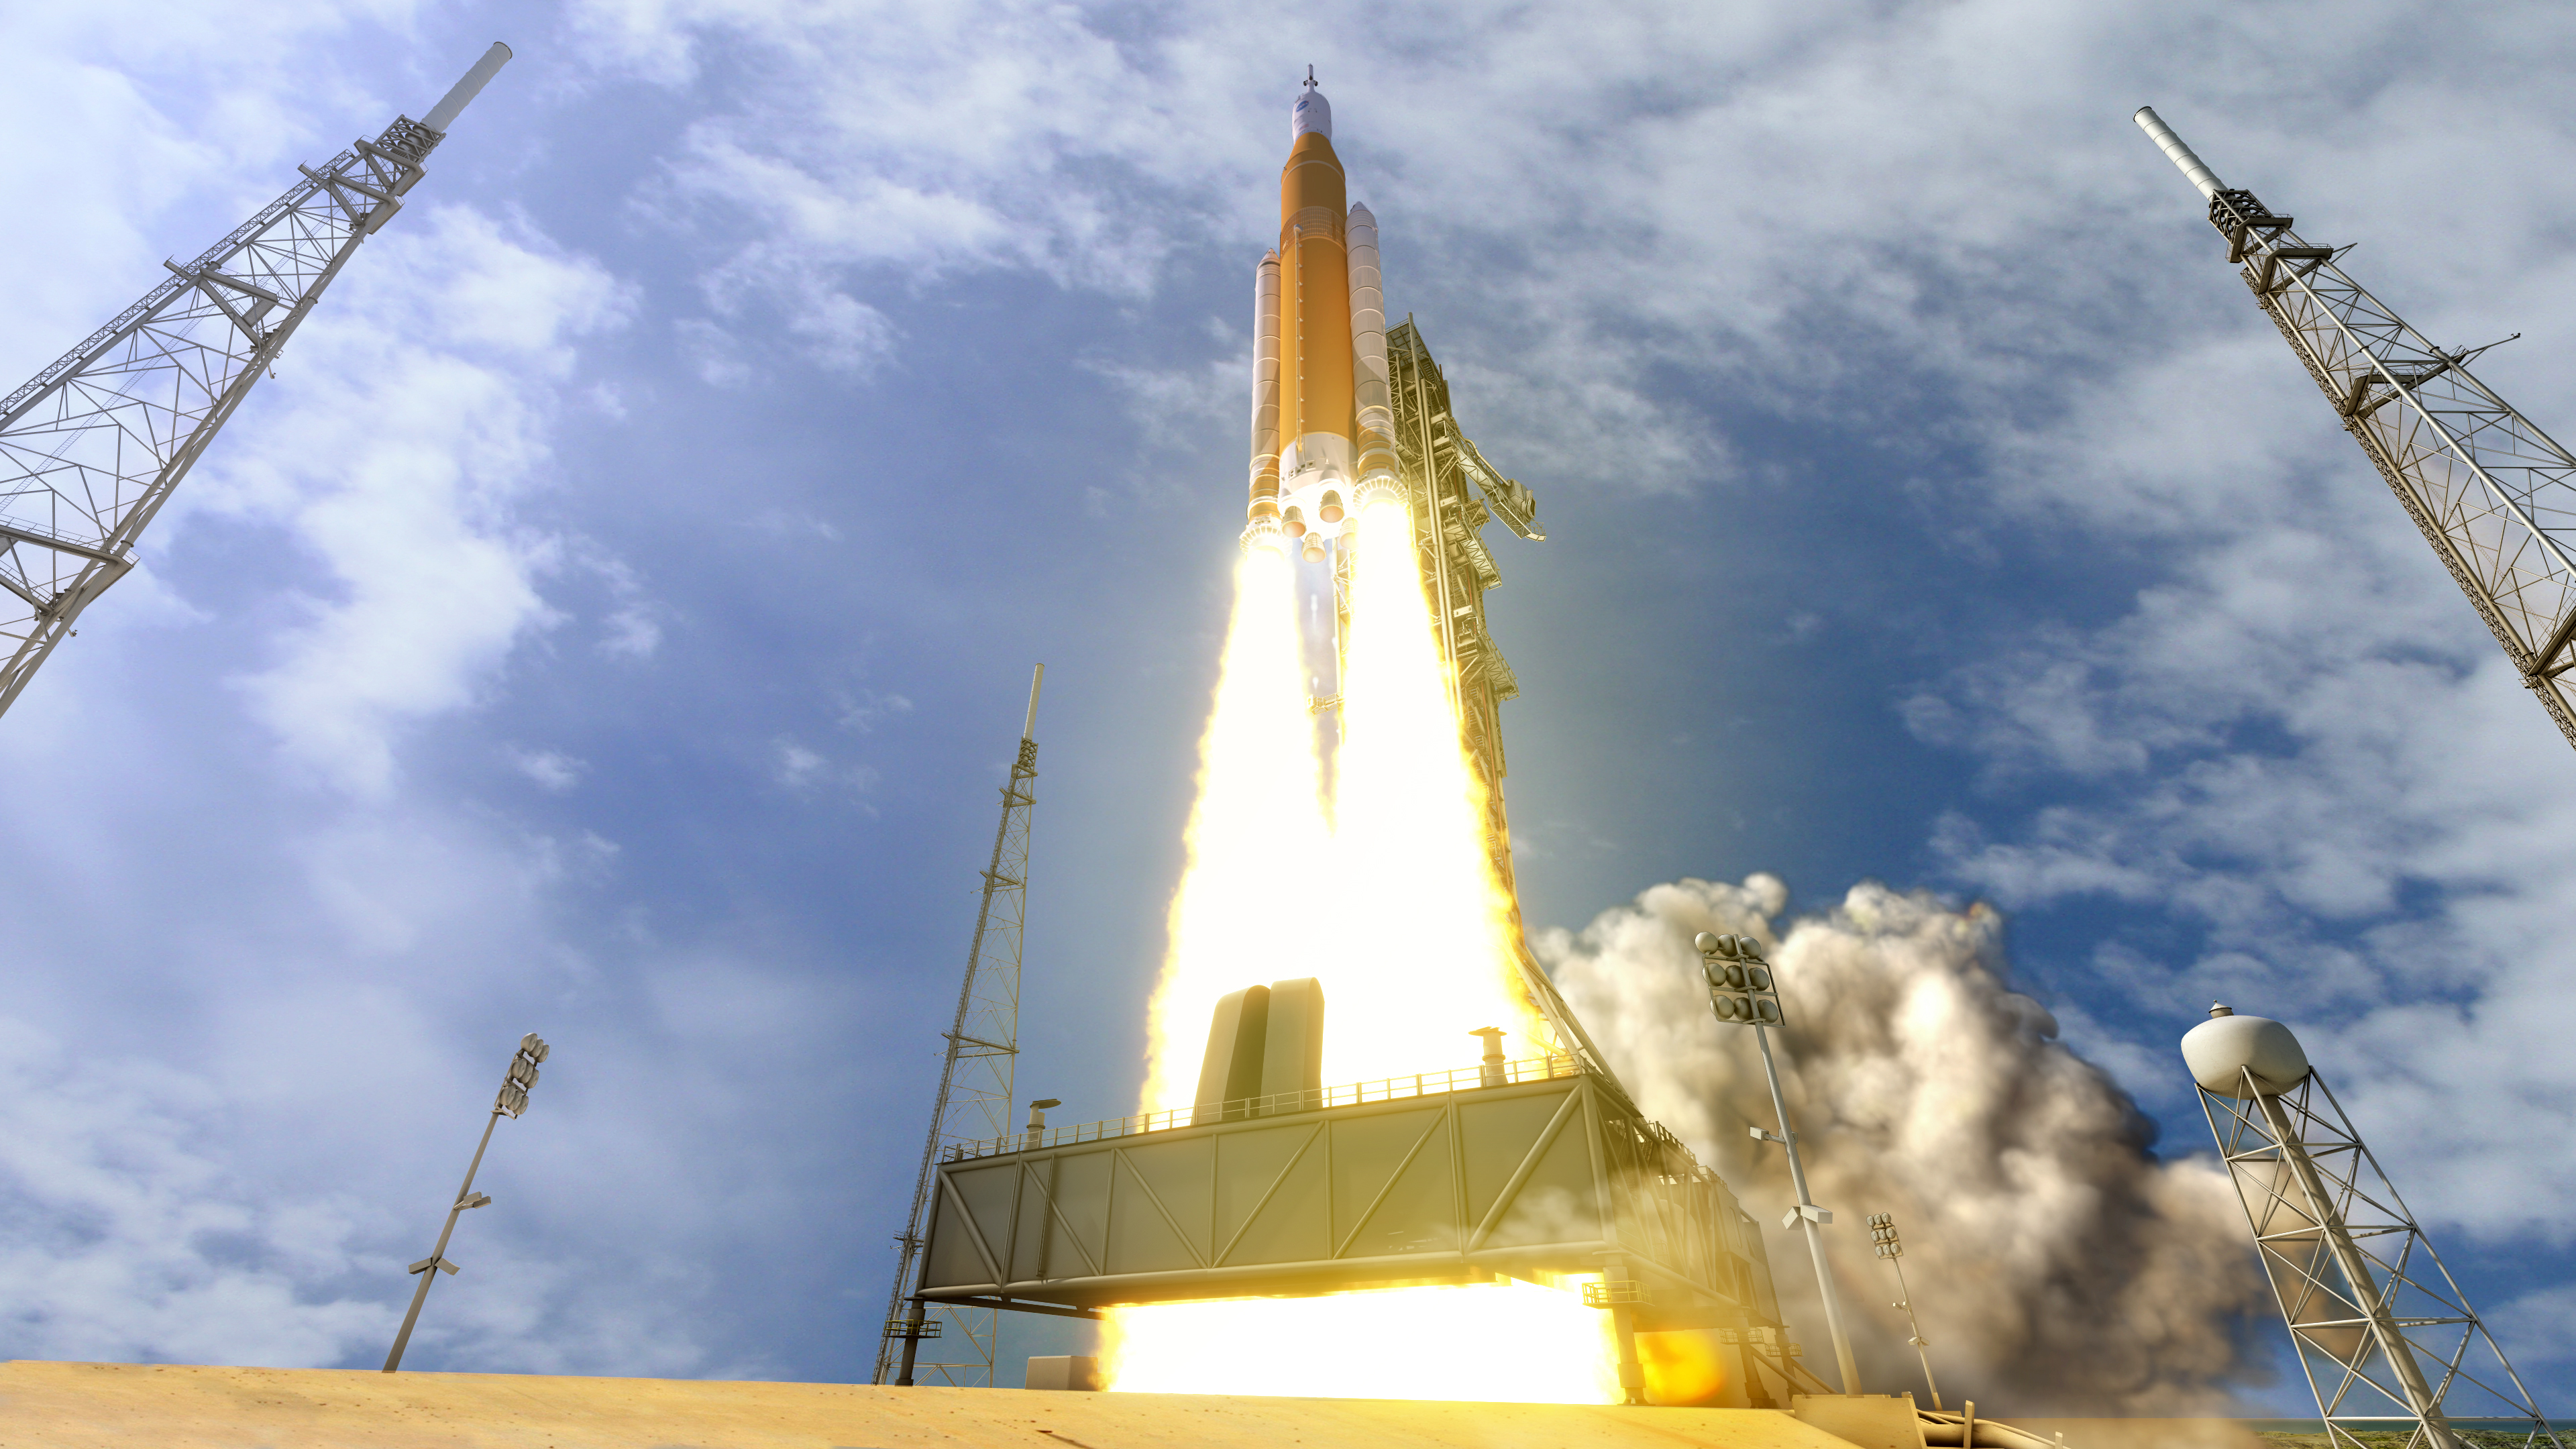 sls new space shuttle - photo #18